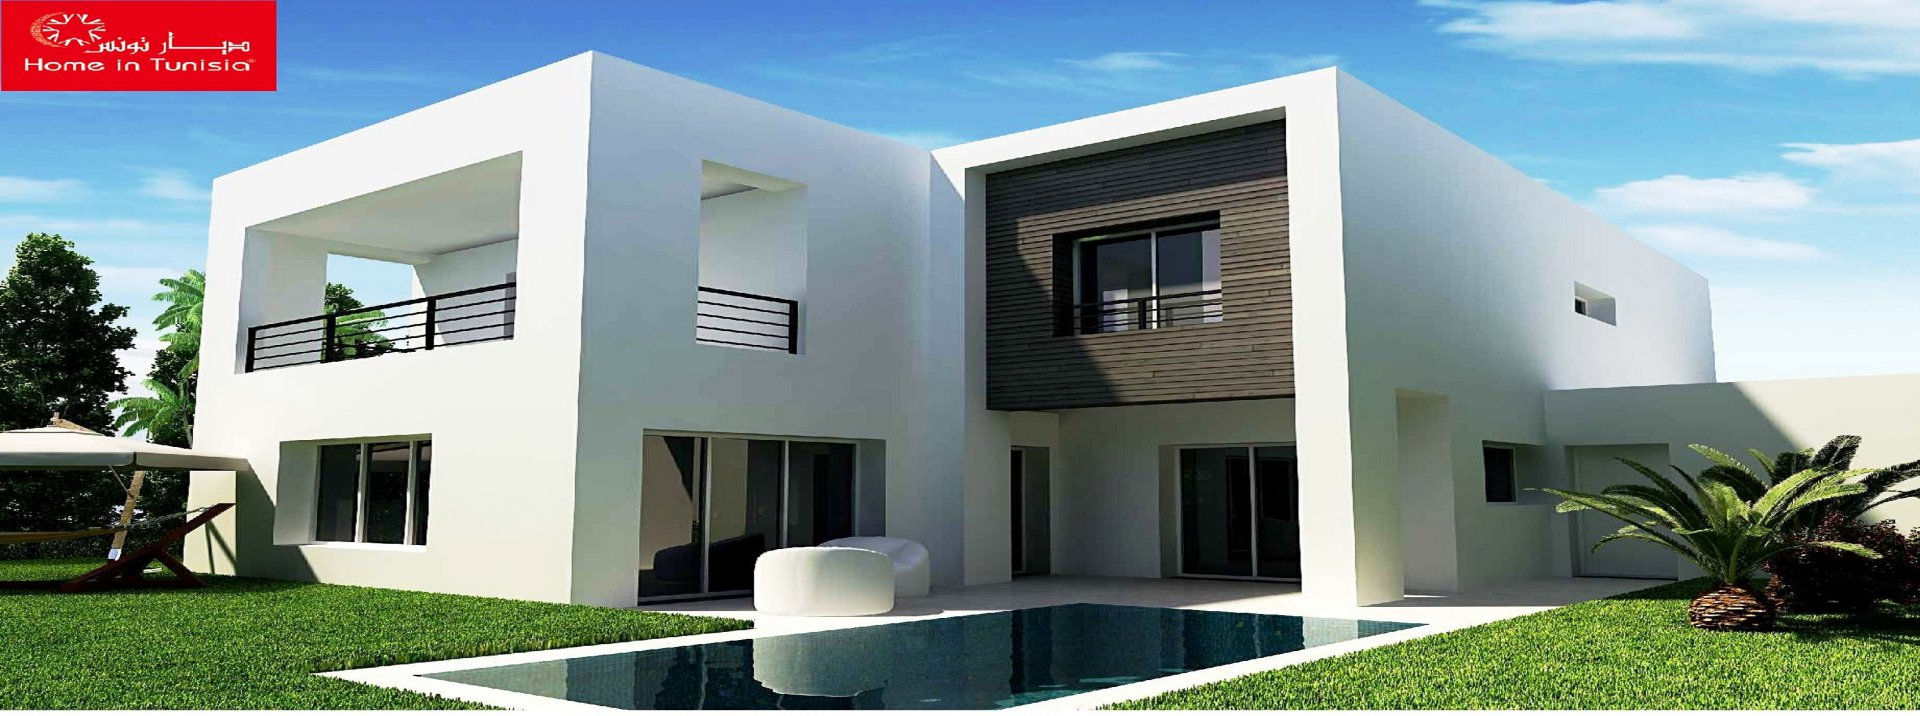 Villa isolated new golf of 3417.14 m2 with 4 rooms terrace garden swimming pool garage